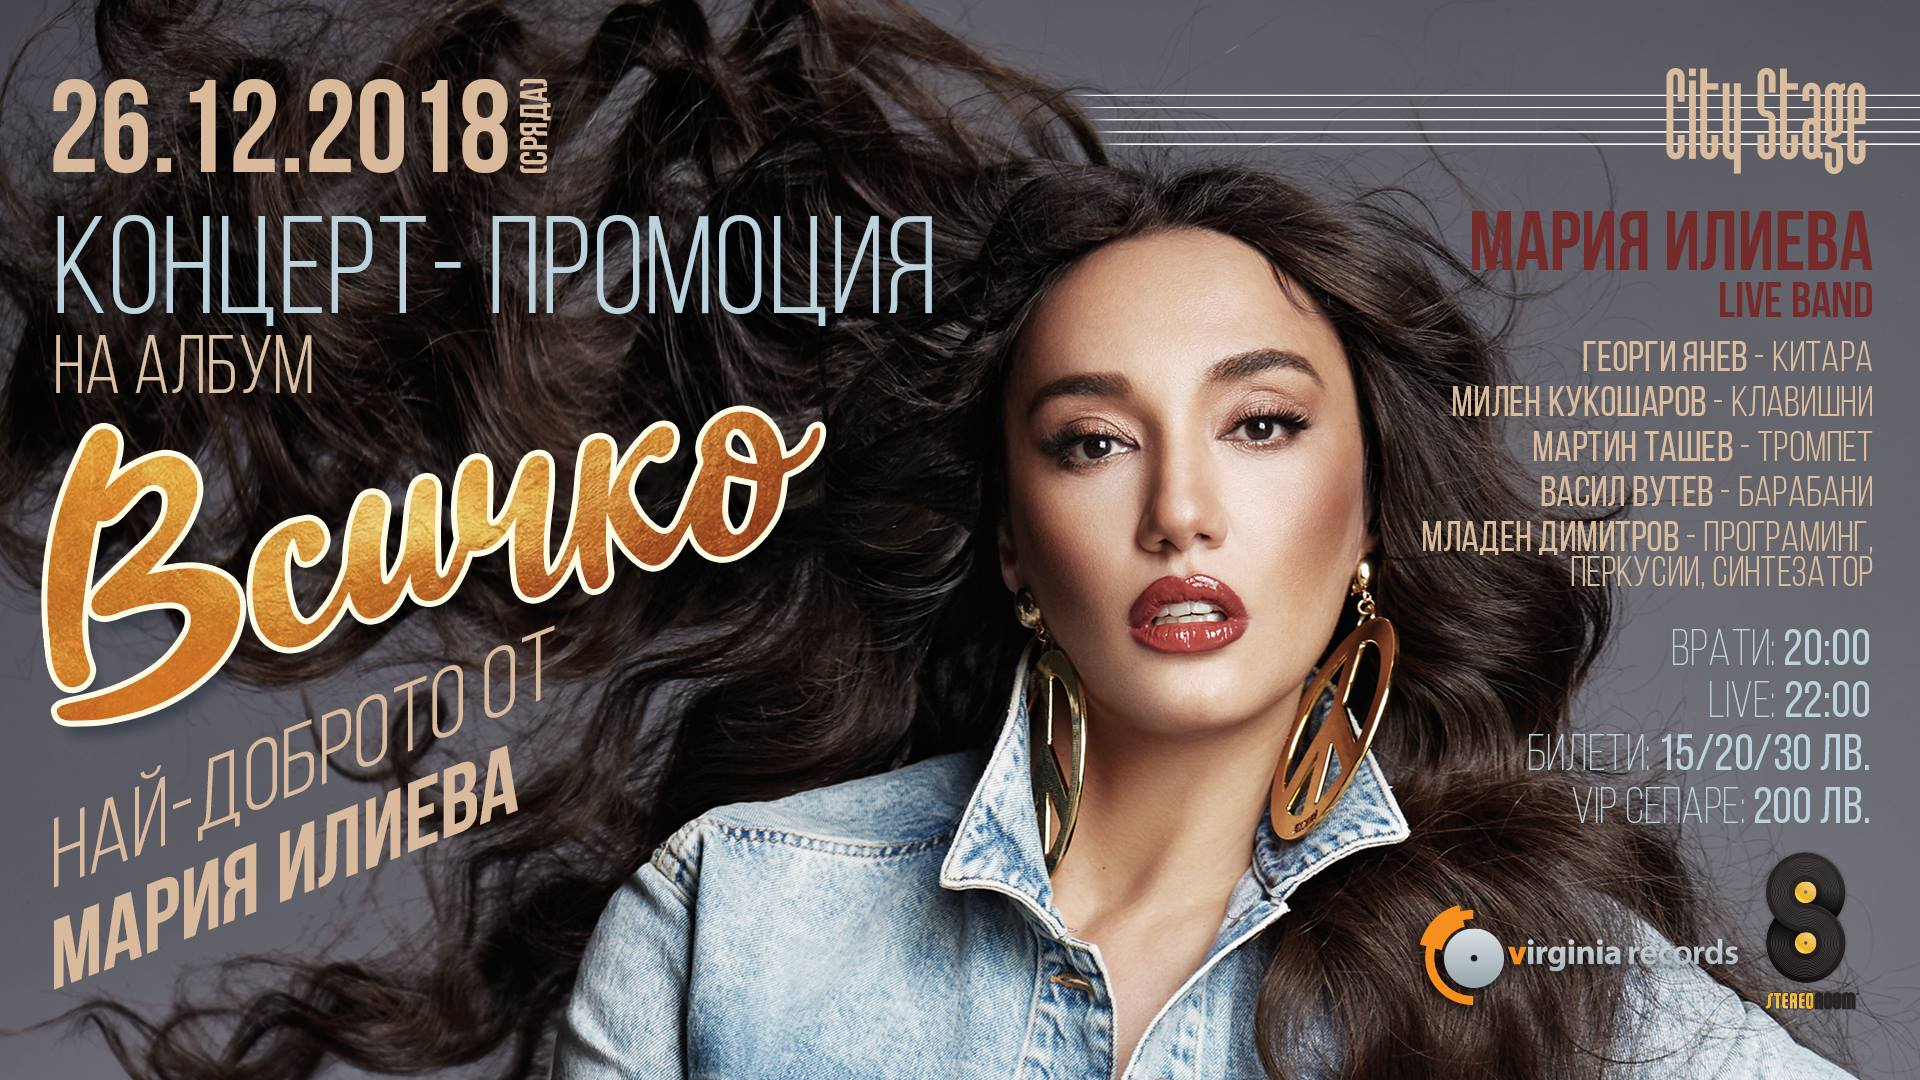 Maria Ilieva with concert in City Stage